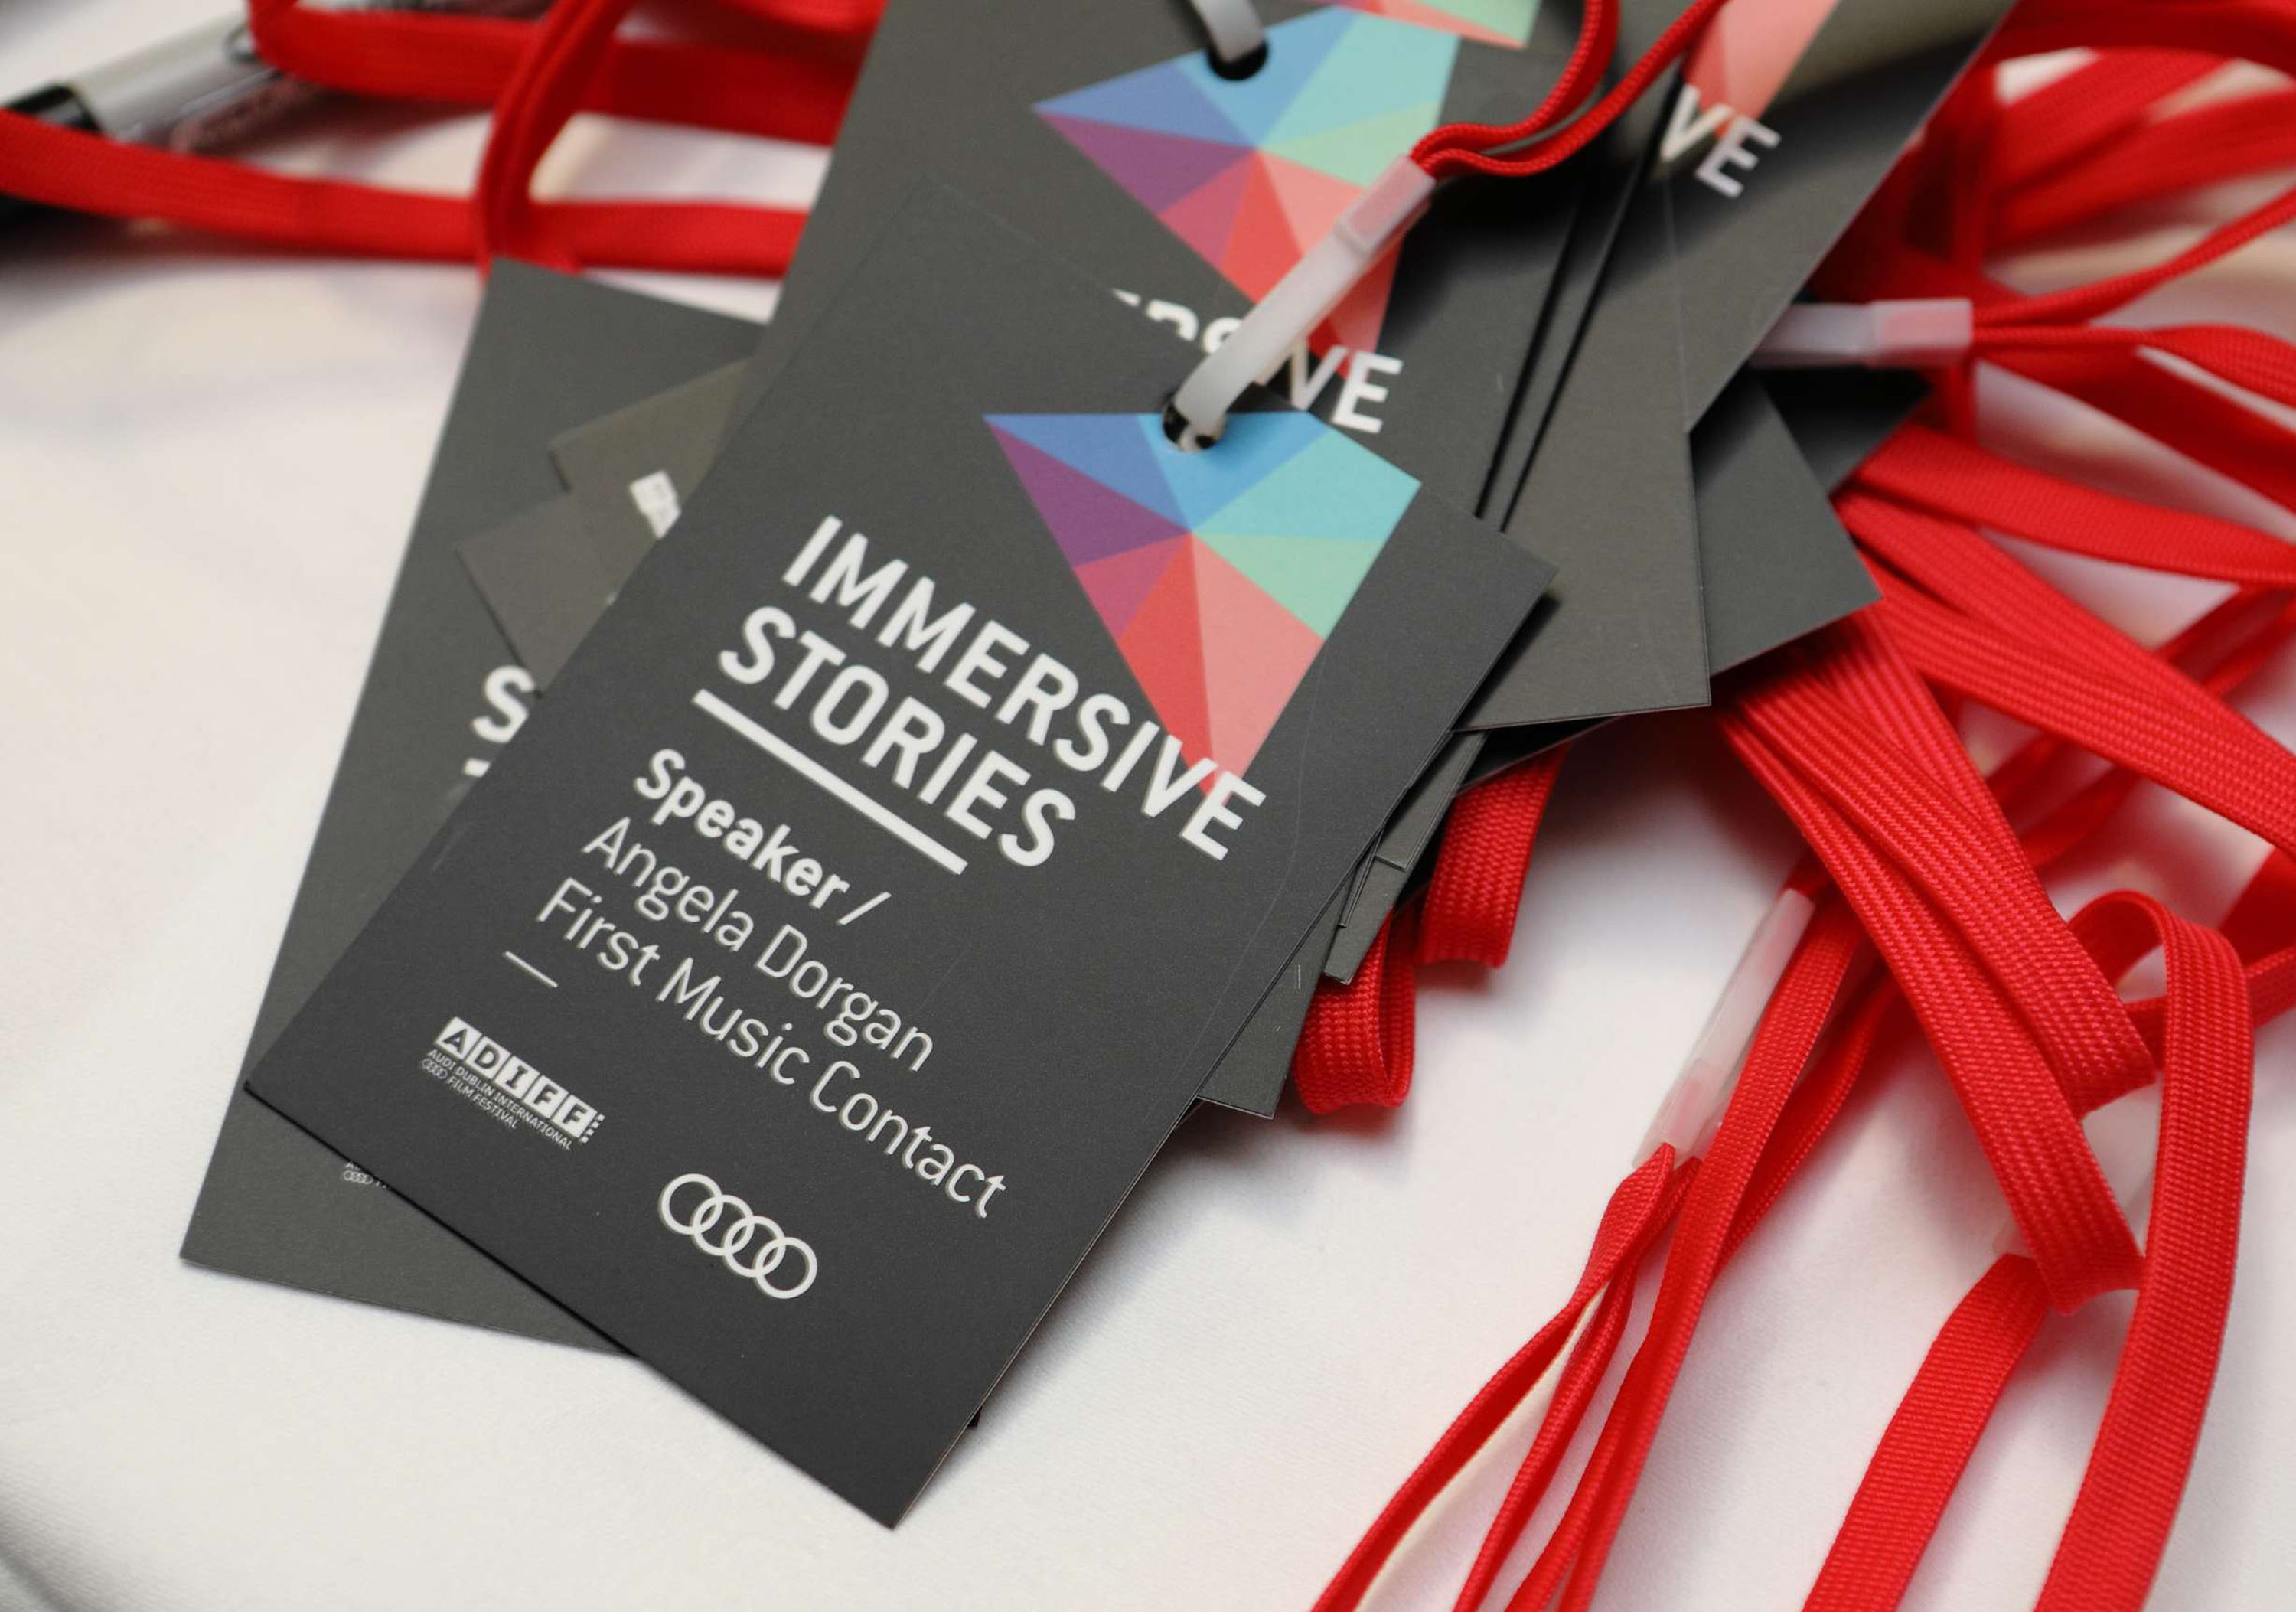 ADIFF The Immersive Stories Virtual Reality Conference and Exhibition 1